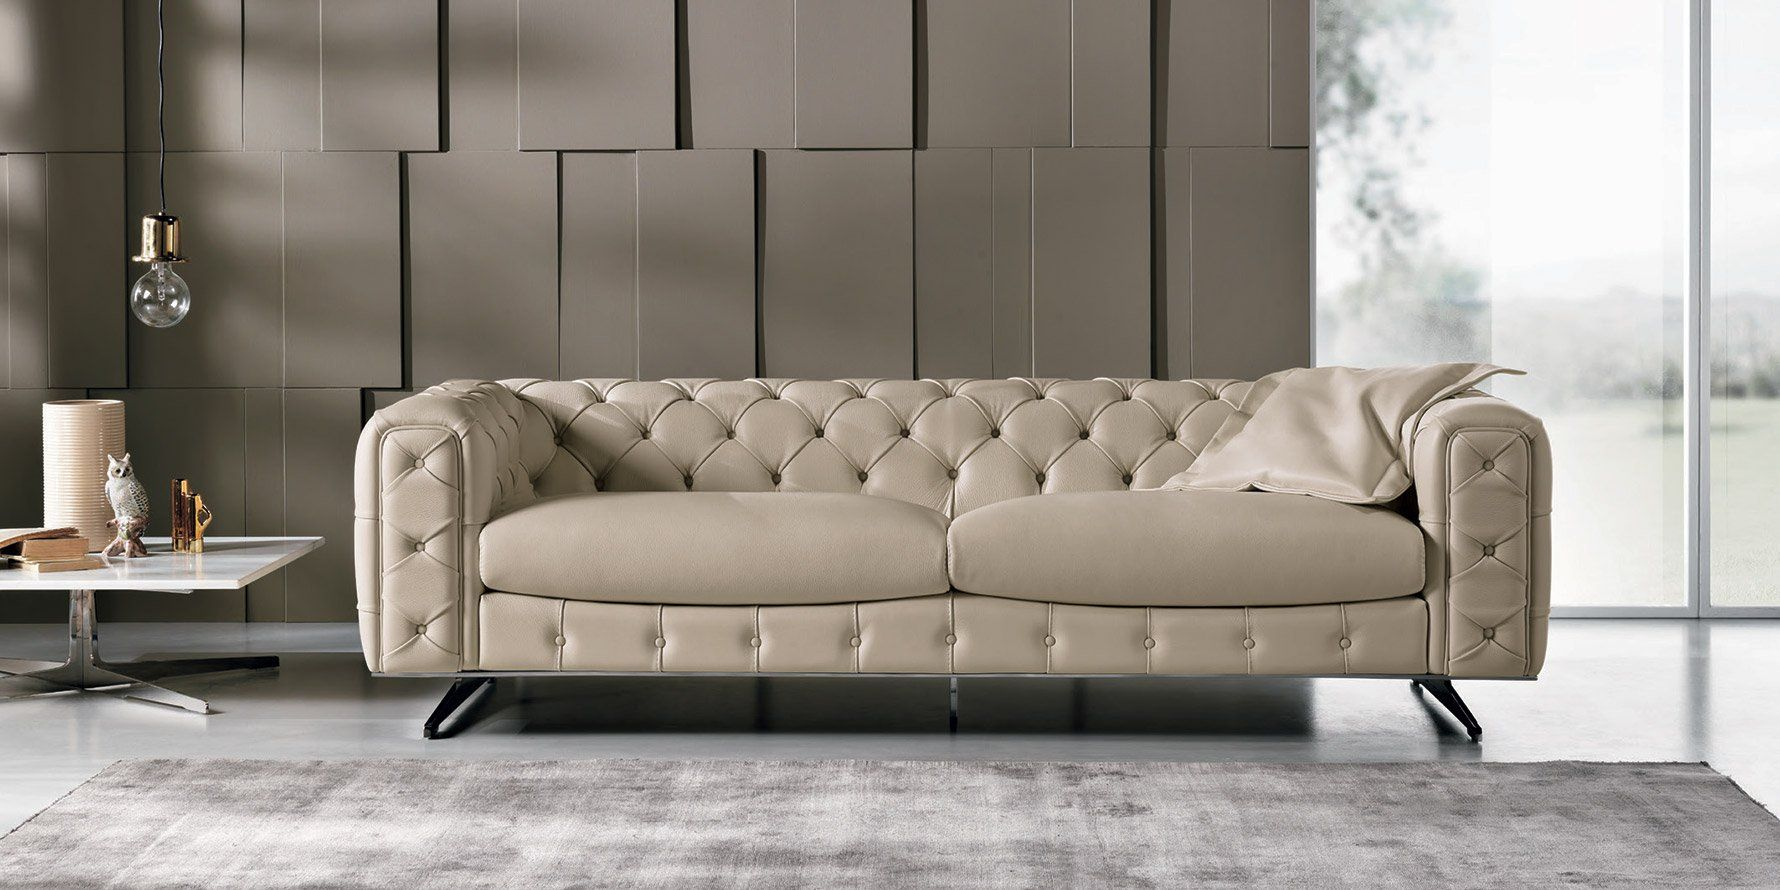 Max Divani Leather Sofa The Ingrid Sofa And Loveseat From Max Divani Italy Tufted